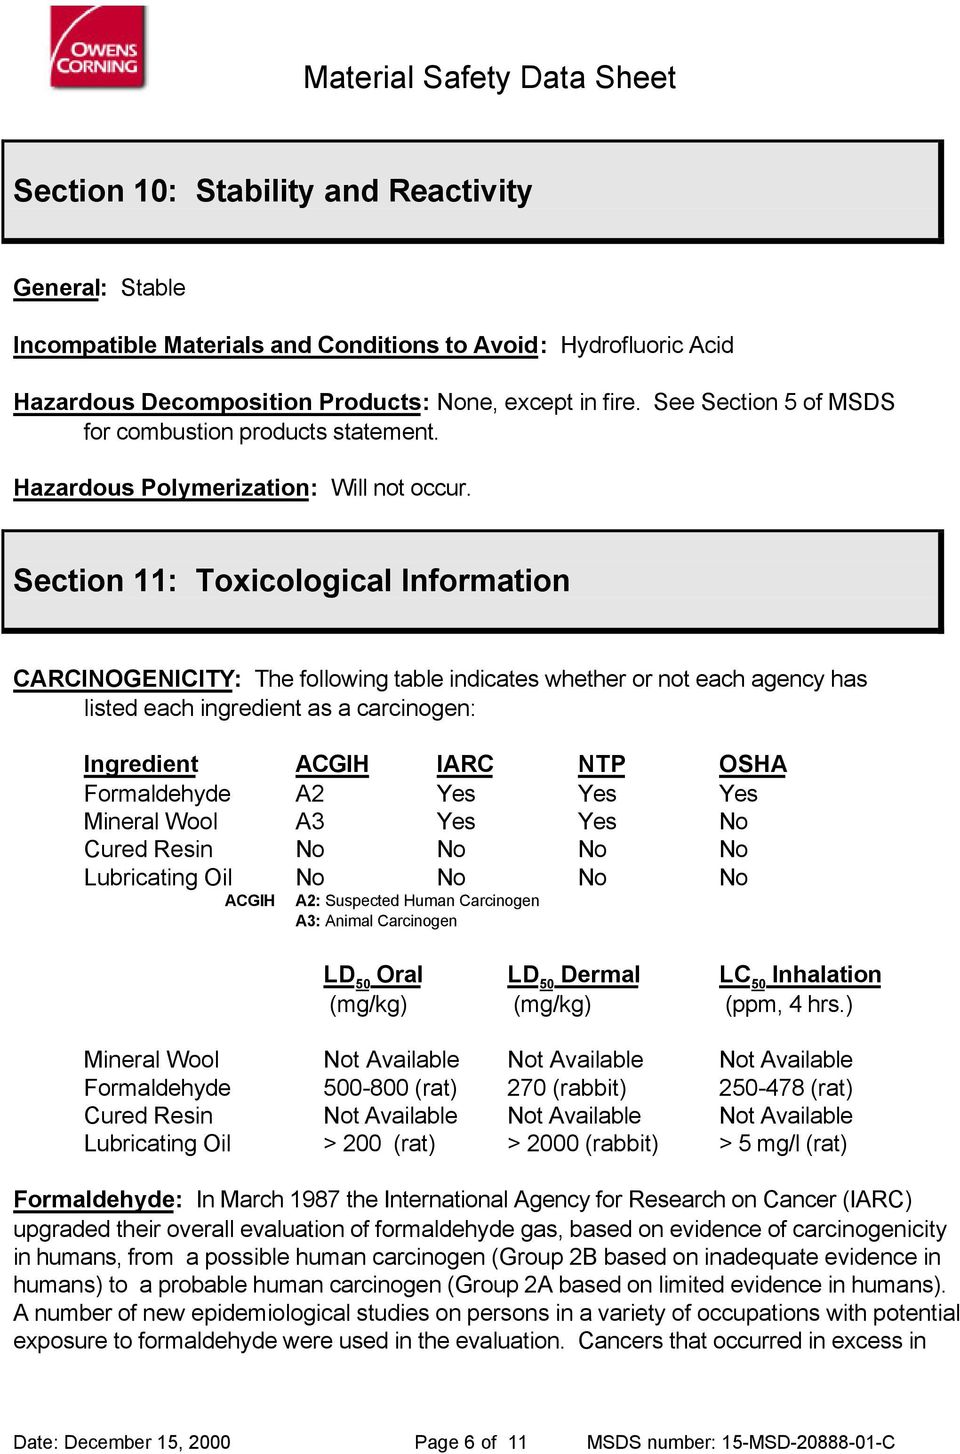 Section 11: Toxicological Information CARCINOGENICITY: The following table indicates whether or not each agency has listed each ingredient as a carcinogen: Ingredient ACGIH IARC NTP OSHA Formaldehyde